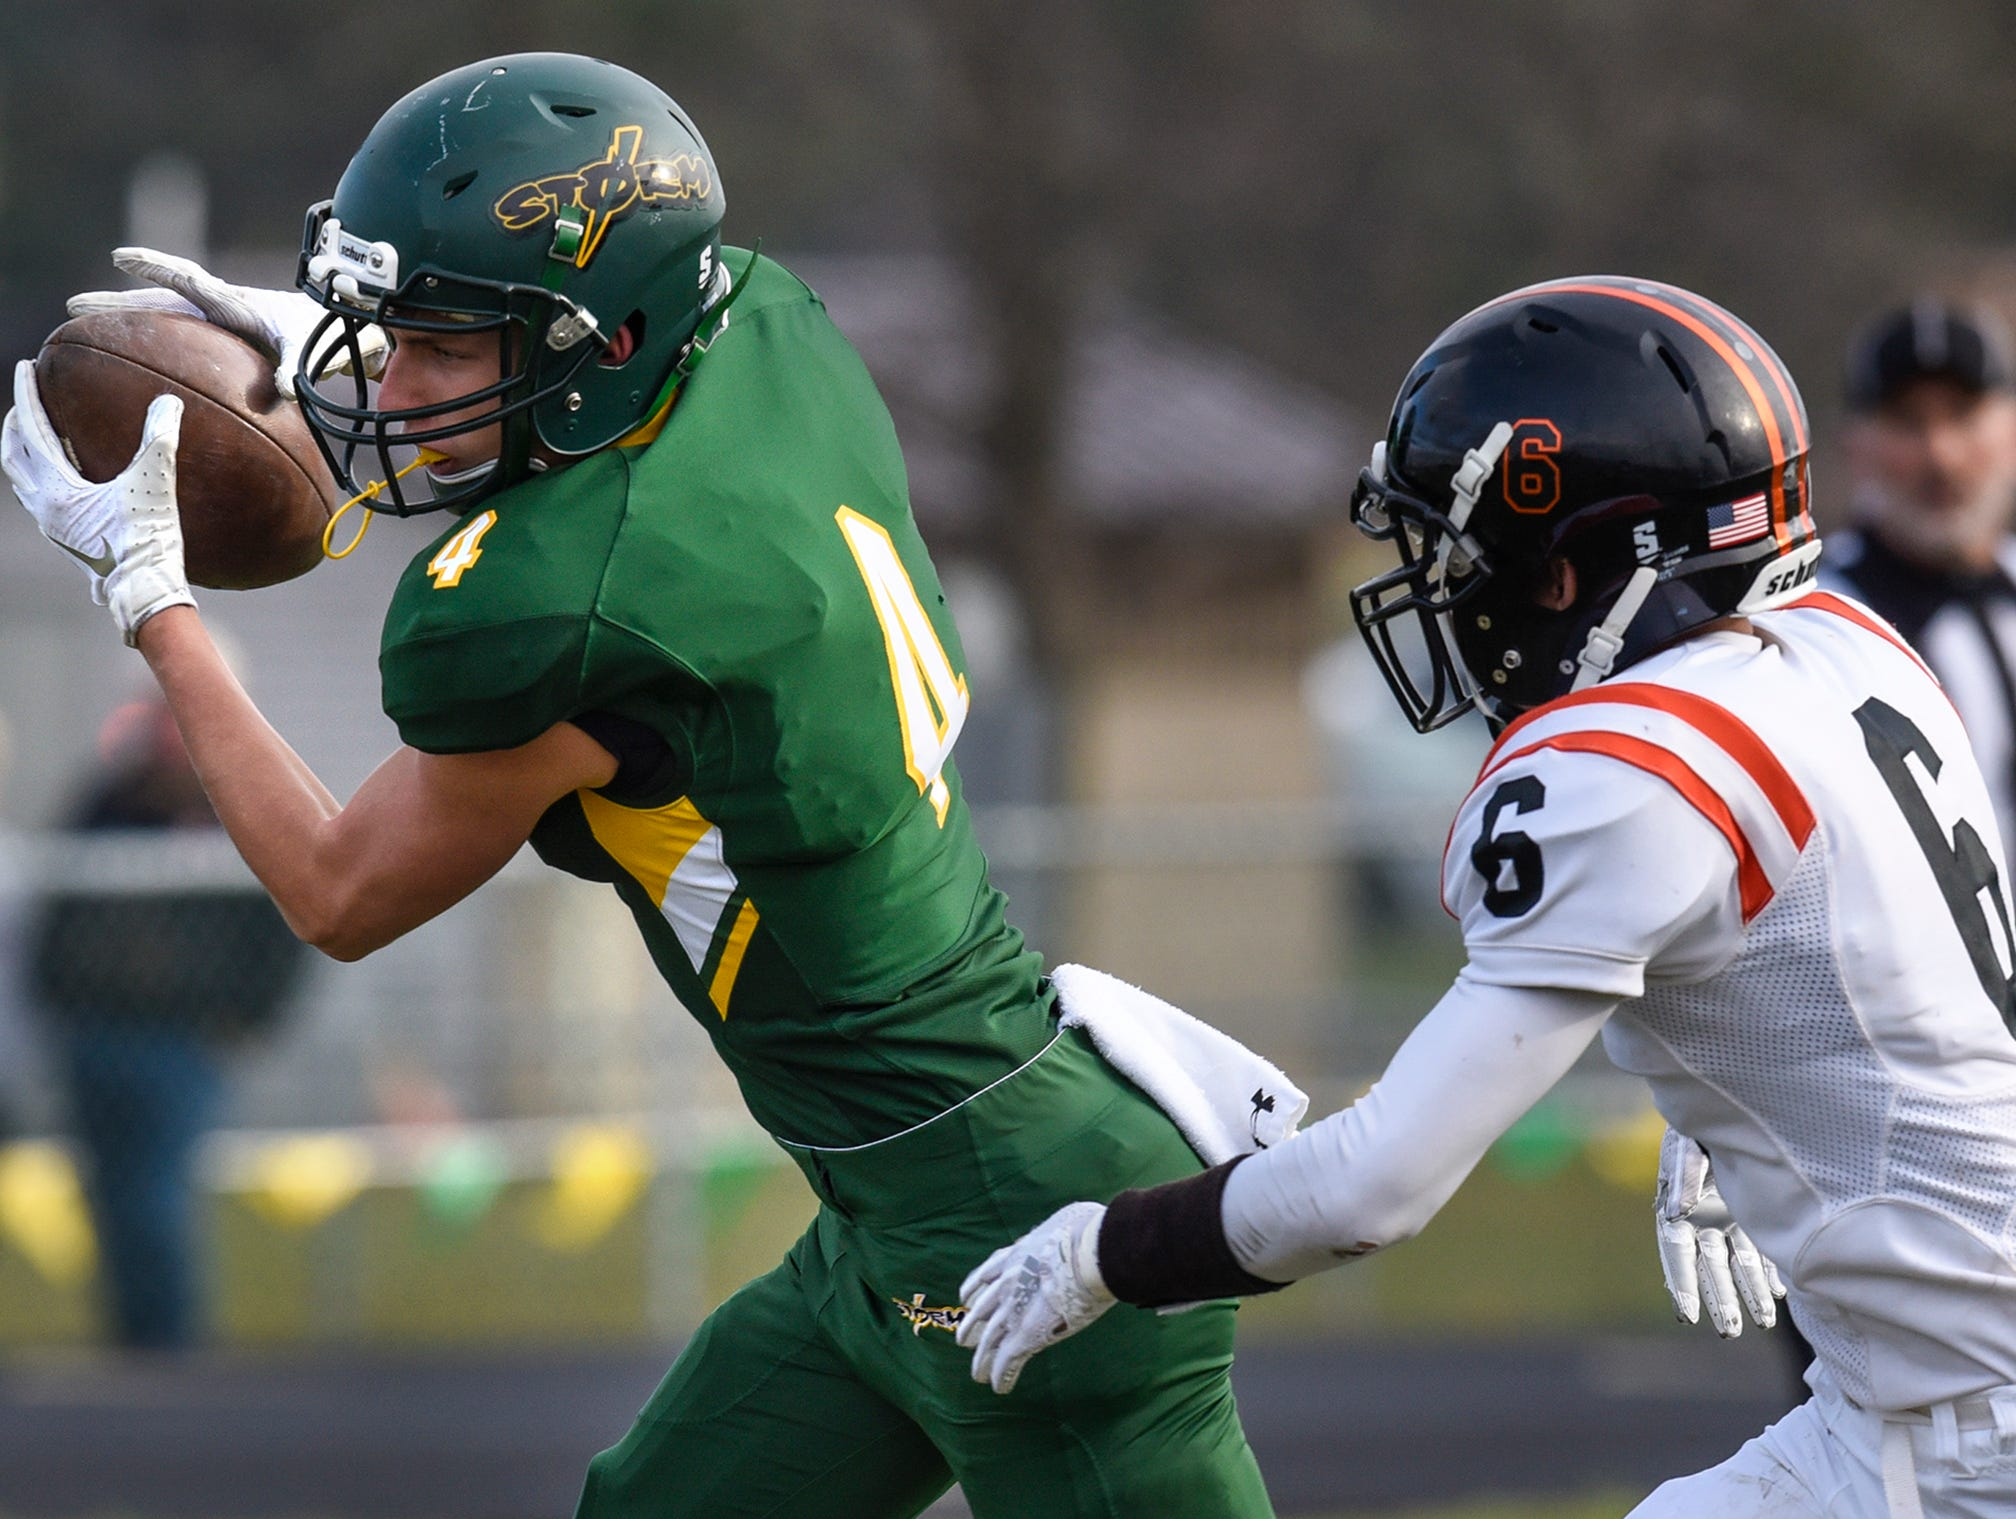 Kobe Lee makes a catch for Sauk Rapids Saturday, Oct. 27, during the Section 6-5A semifinal game against Tech in Sauk Rapids.